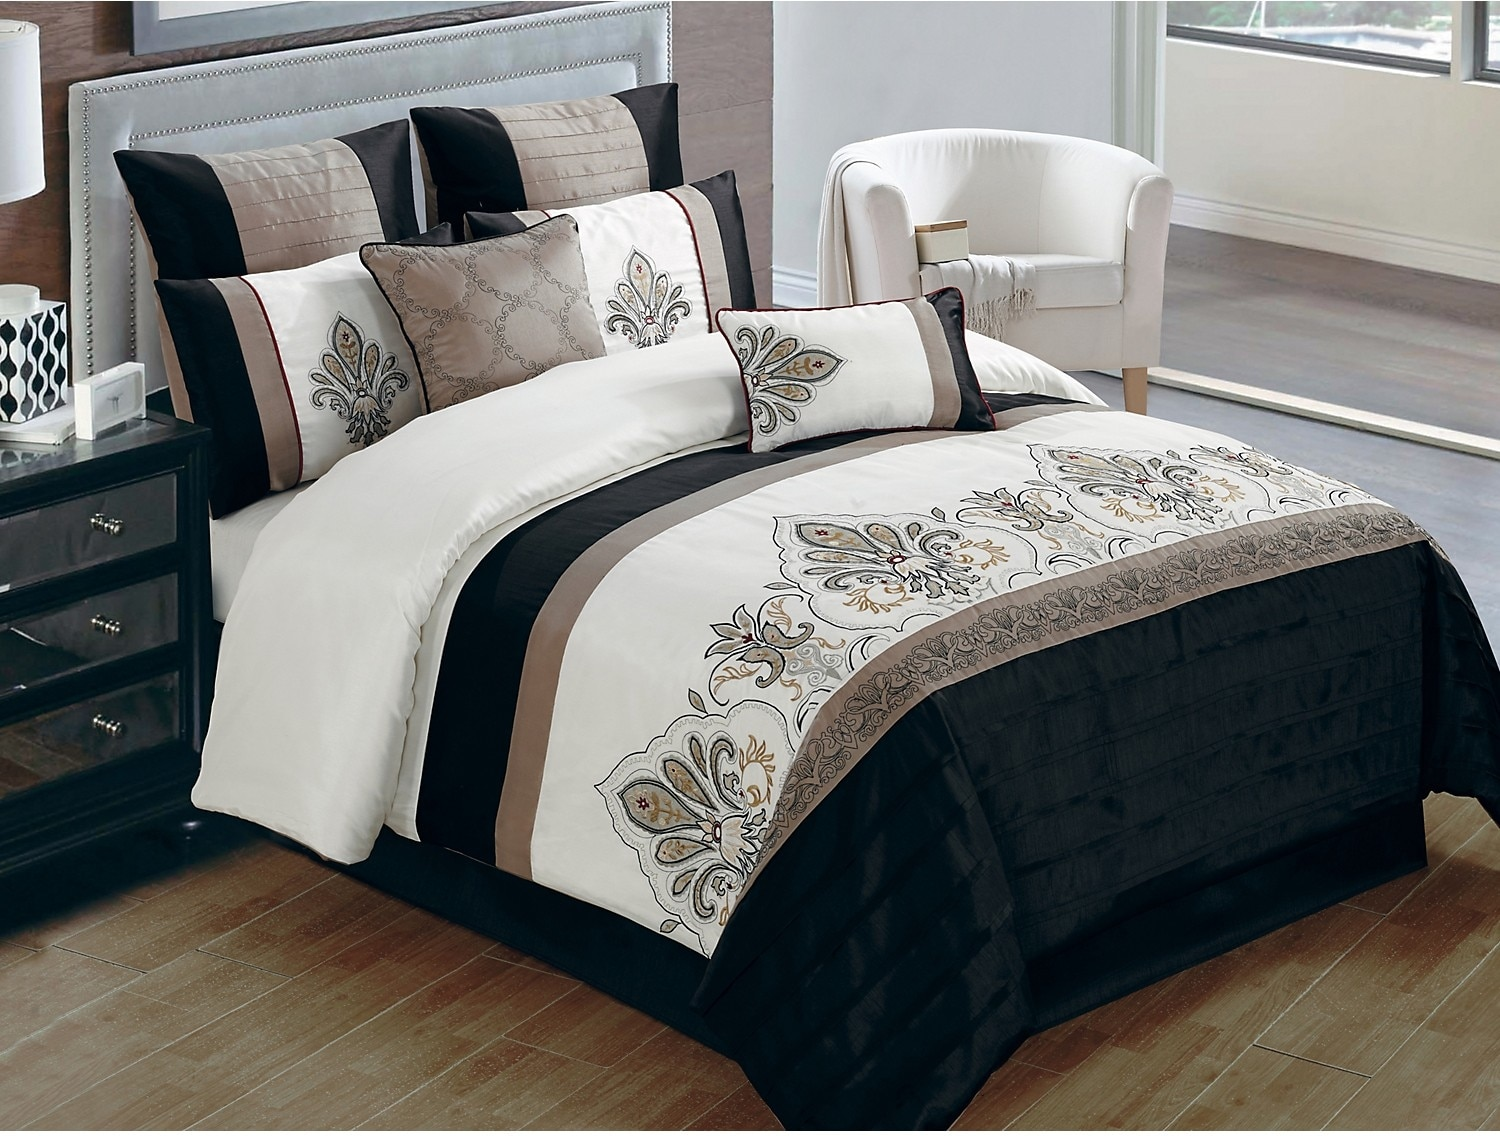 Mattresses and Bedding - Jacobson 8-Piece King Comforter Set